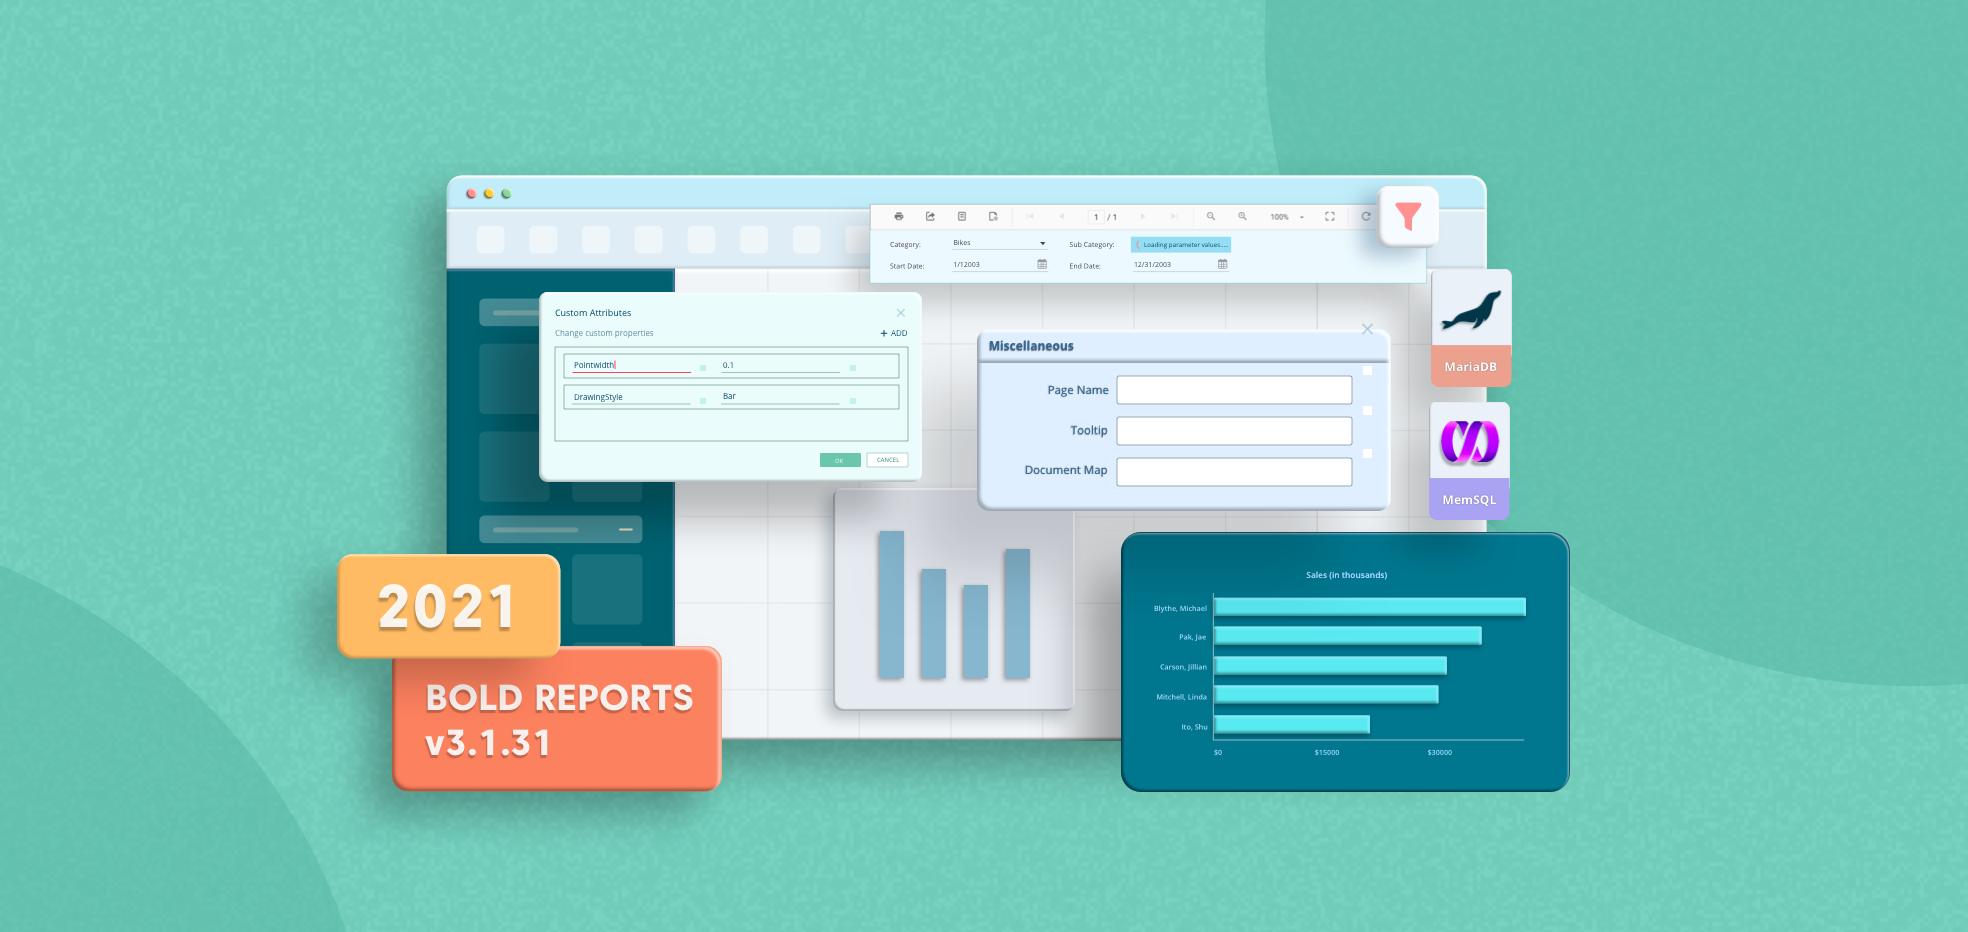 What's New in Bold Reports v3.1.31